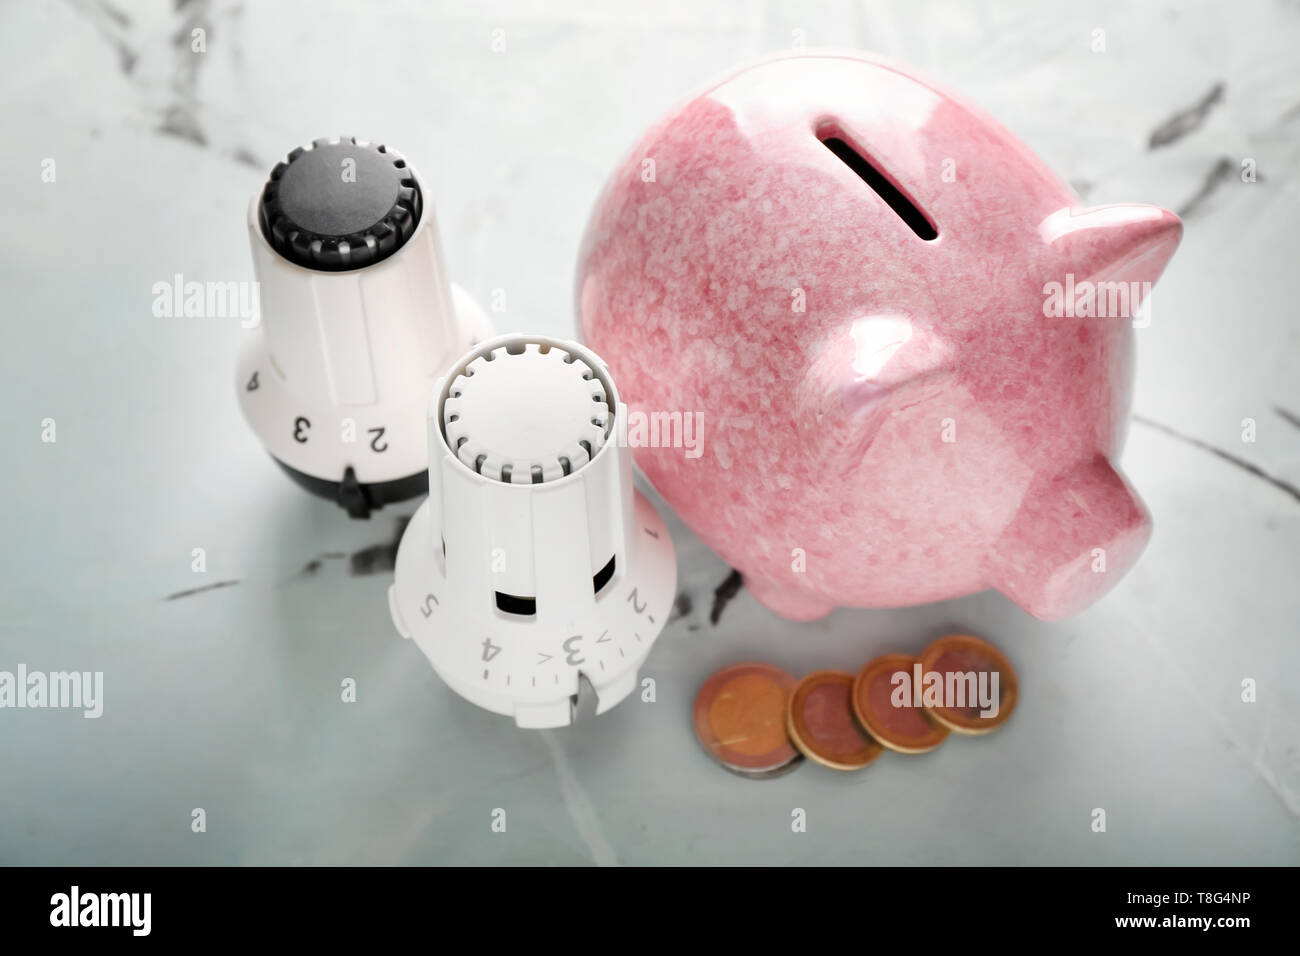 Piggy bank with coins and thermostats on light background. Heating saving concept - Stock Image